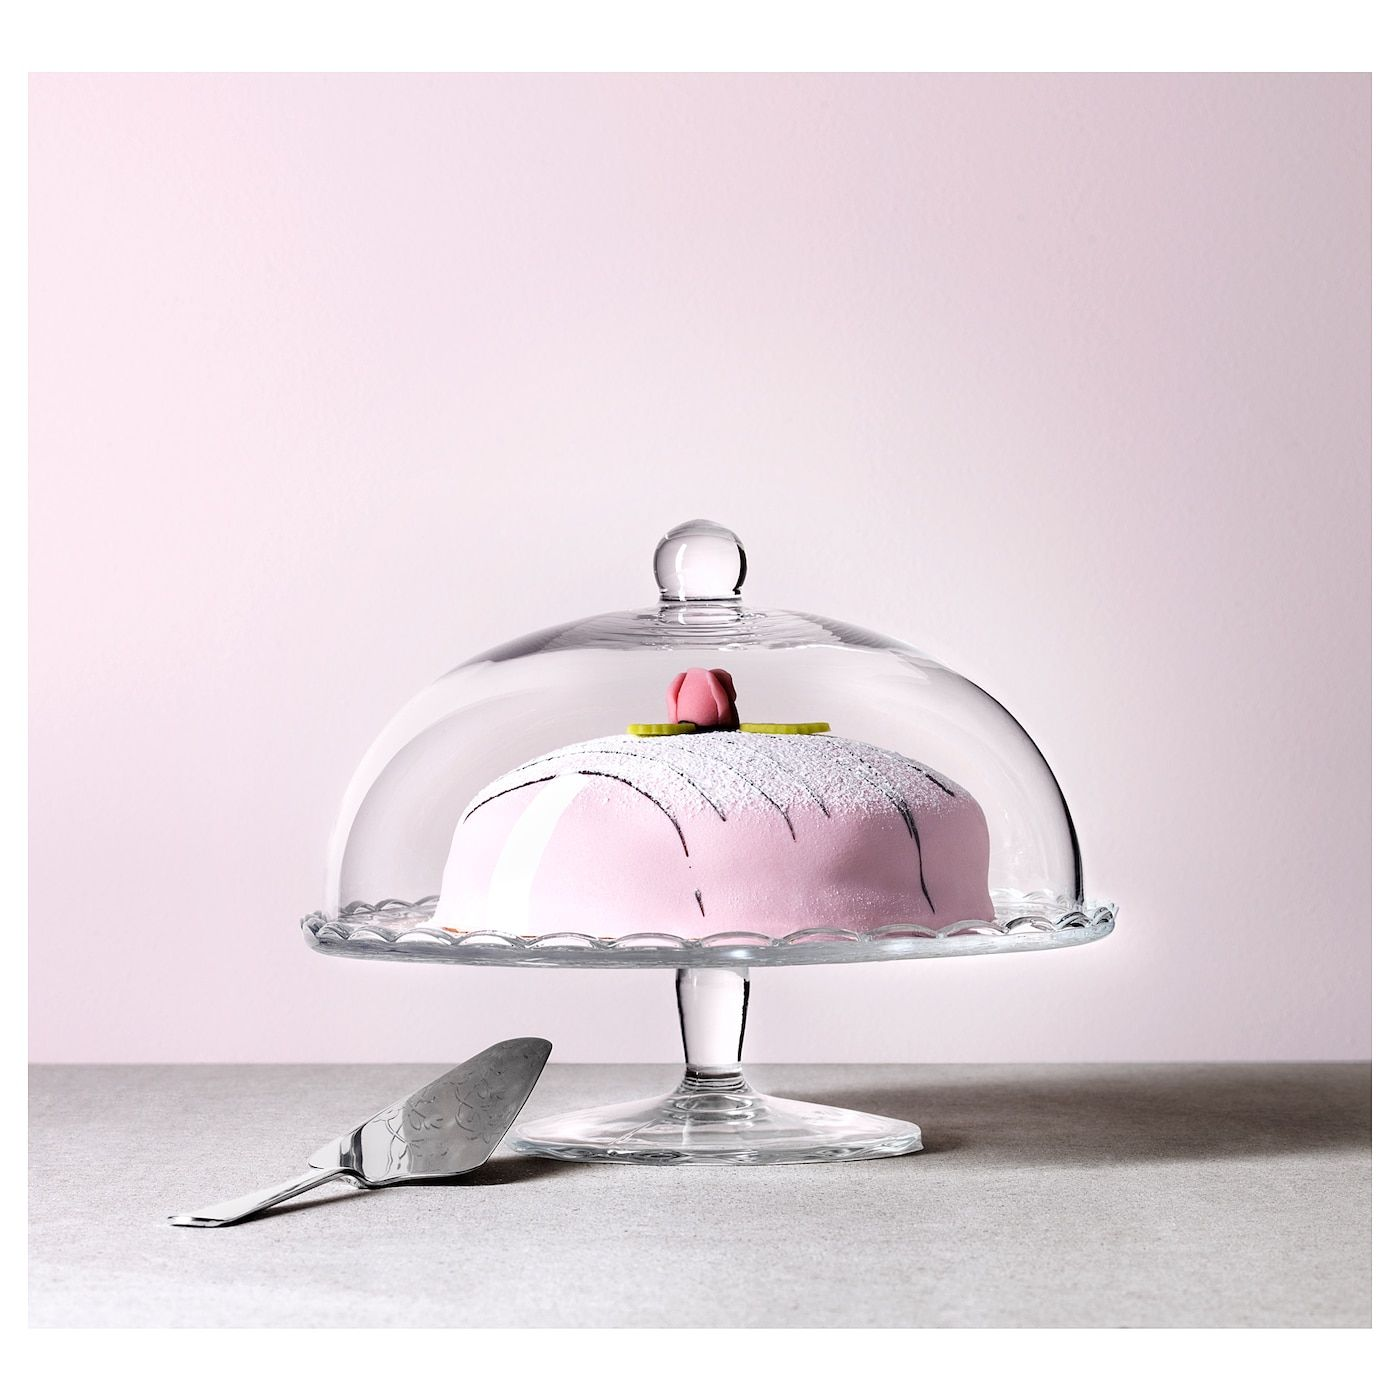 43+ Cake holder with lid glass ideas in 2021